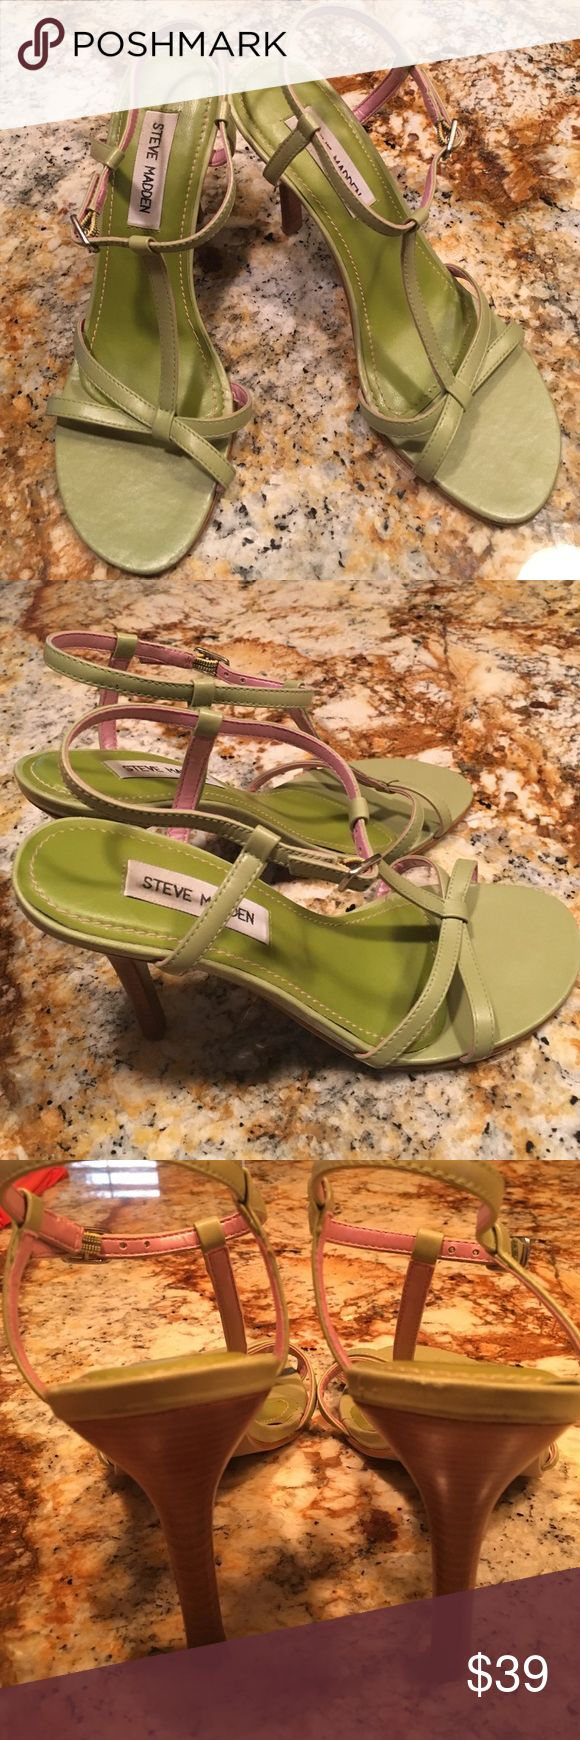 "Steve Madden Trinity green strappy heels Steve Madden Trinity green with pink lining leather strappy 4"" heels. Steve Madden Shoes Heels"